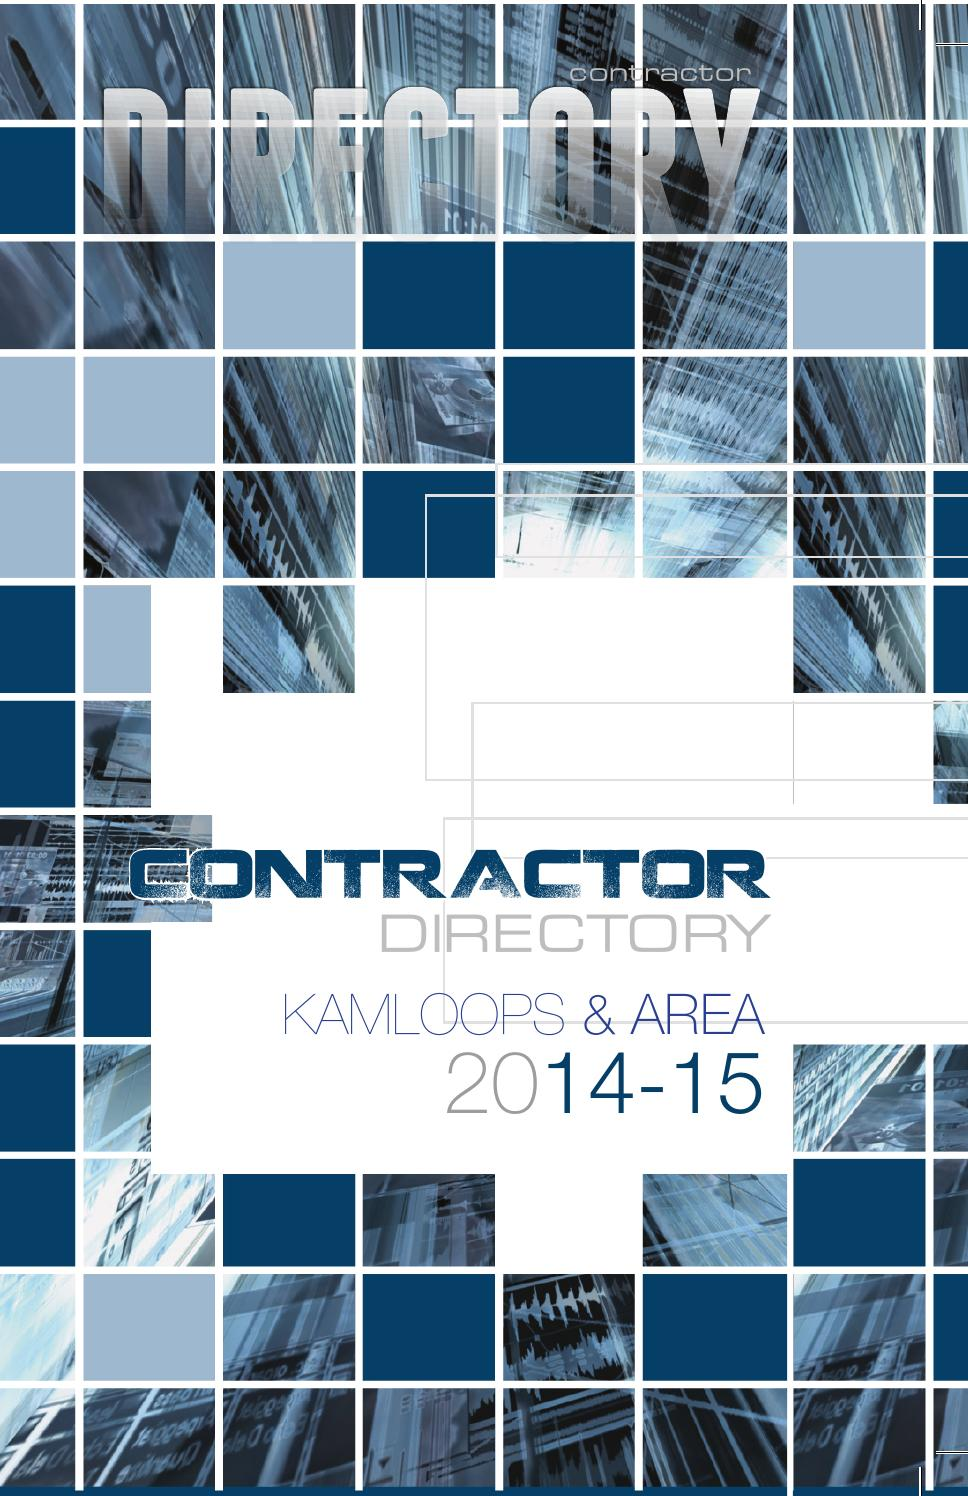 Kamloops Contractor By Thompson River Publications Issuu